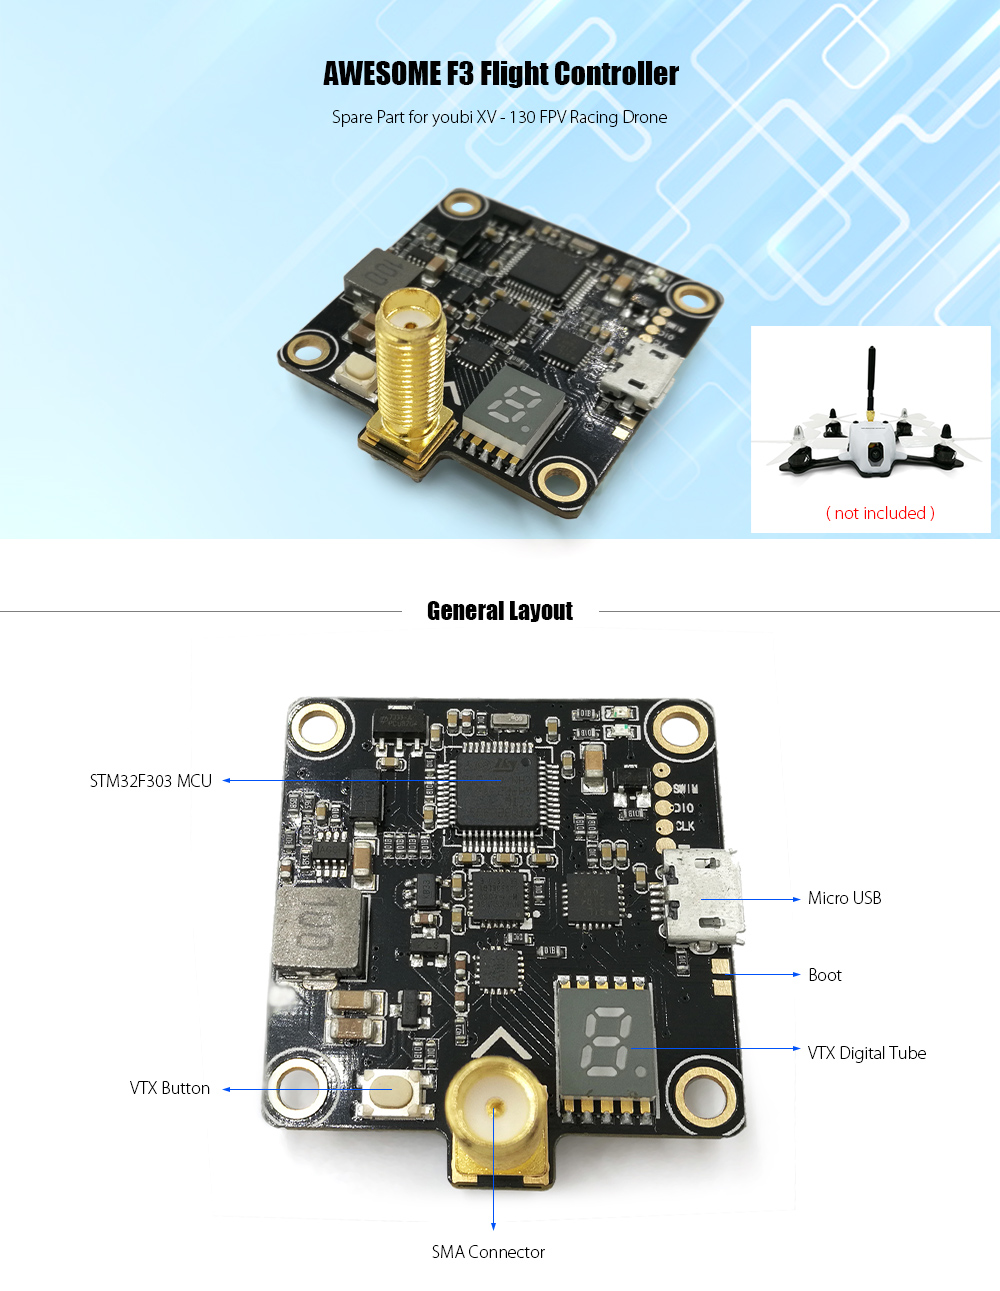 AWESOME F3 Flight Controller with 5.8G 40CH 25mW / 200mW / 400mW Video Transmitter for youbi XV - 130